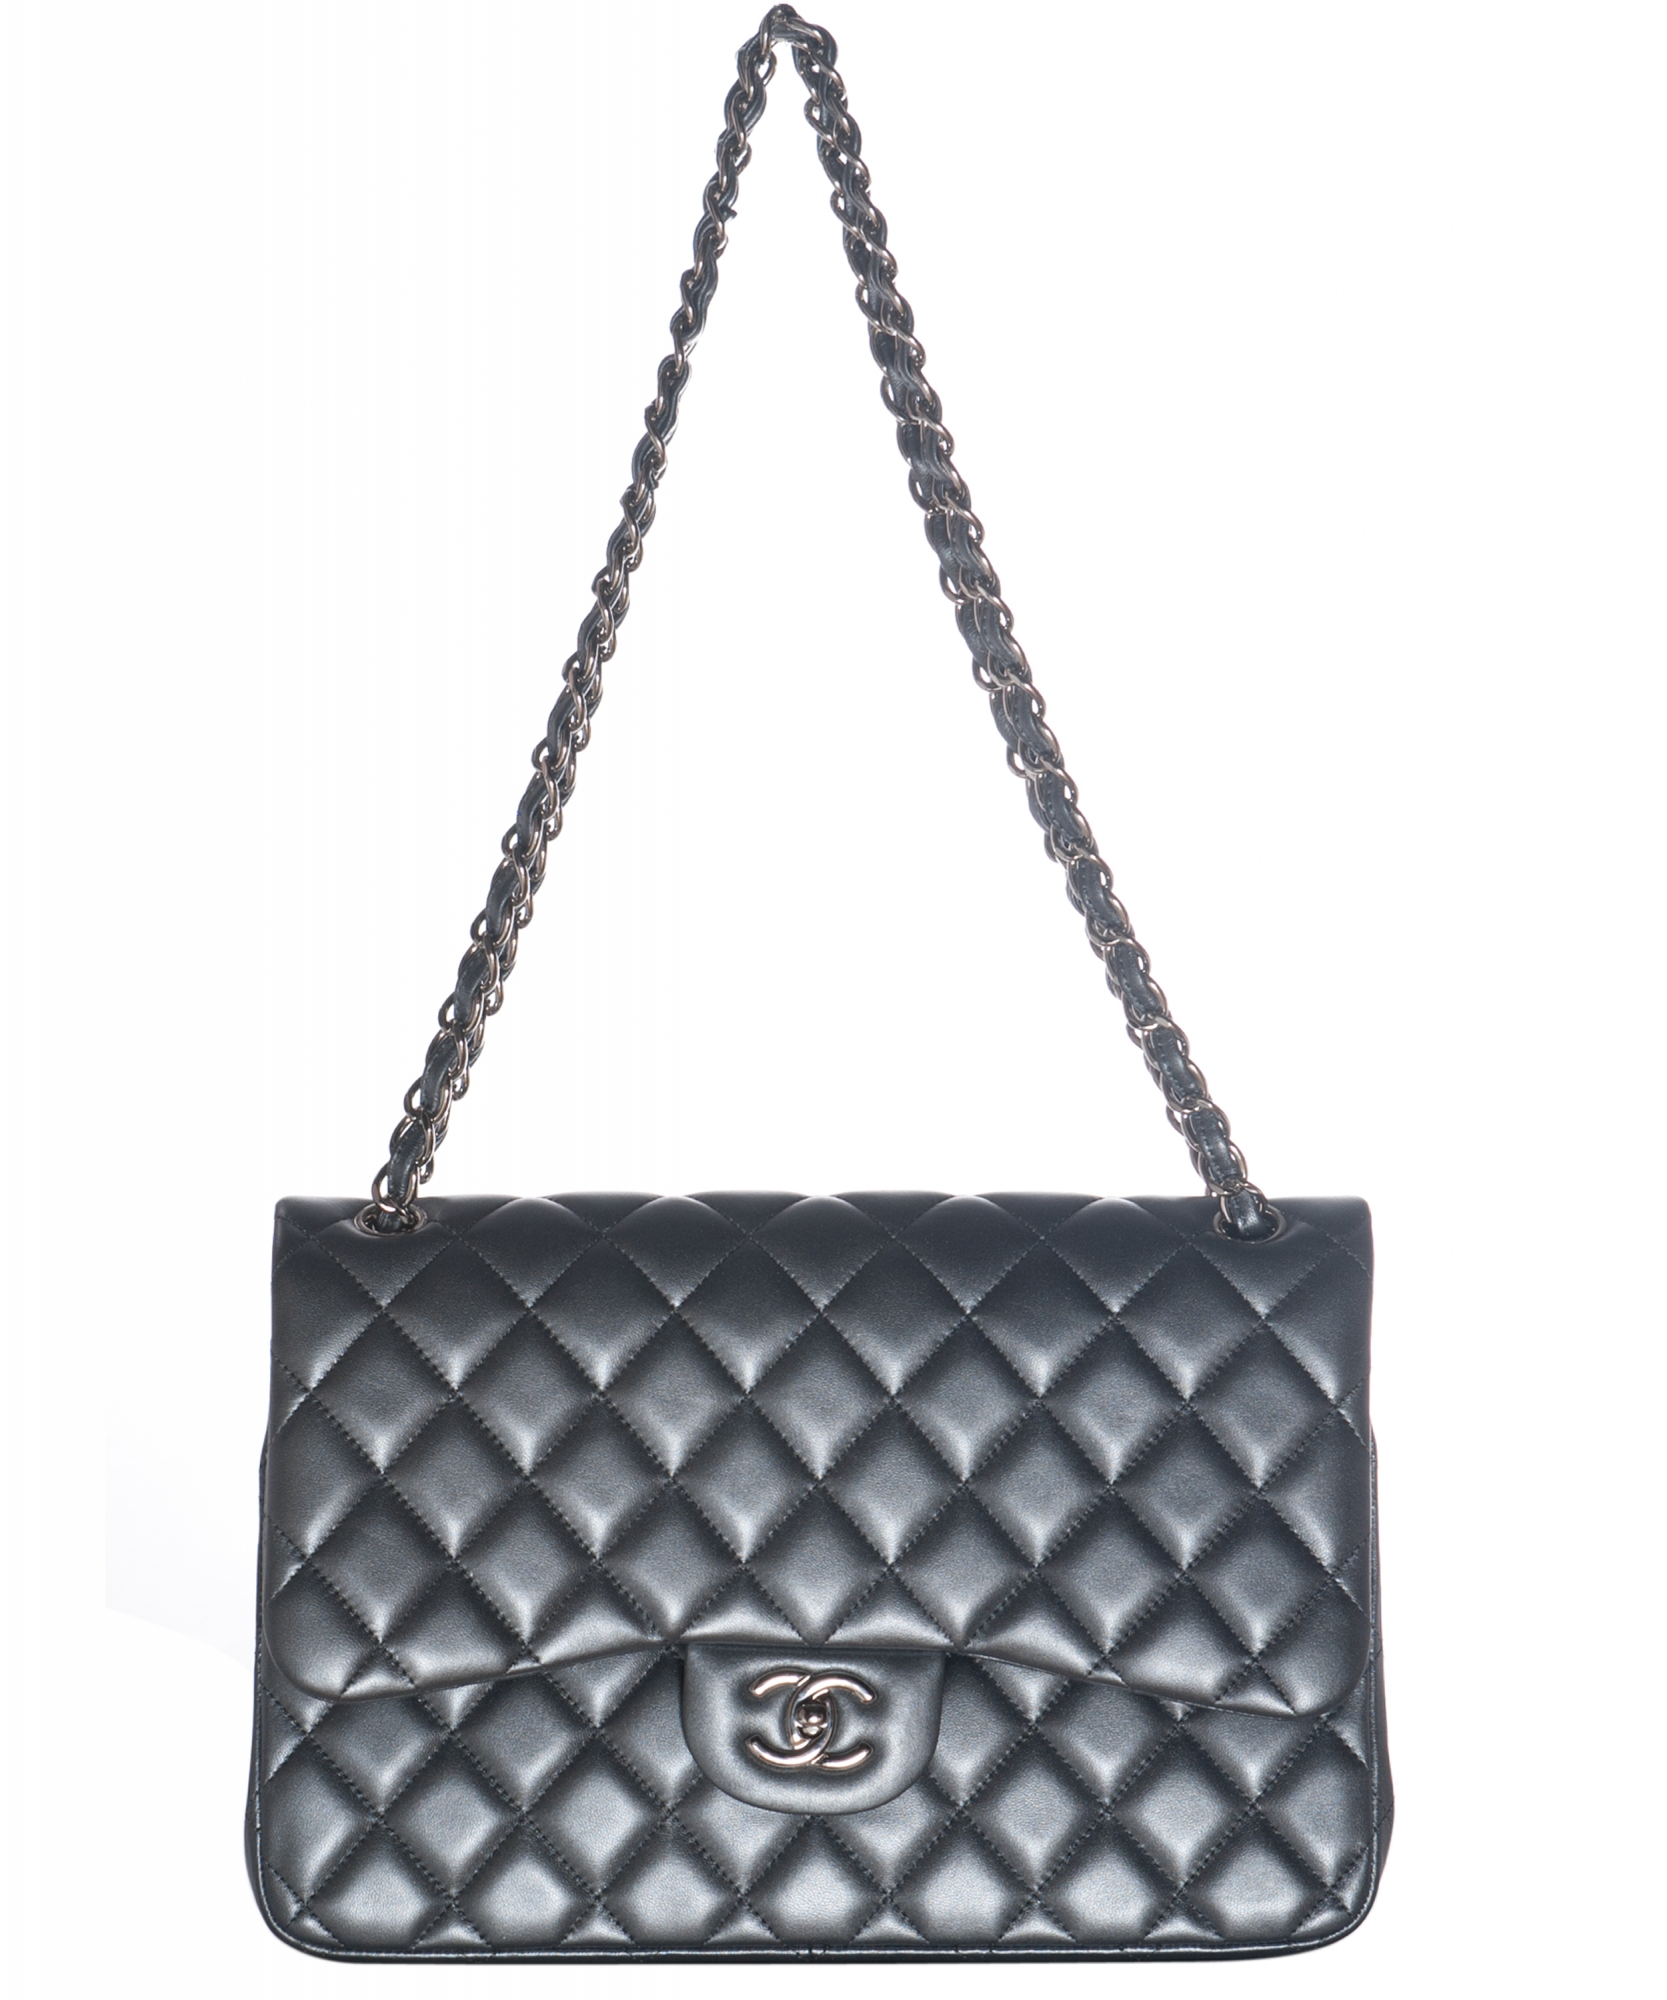 dade63e0edcb Chanel Classic Grey Quilted Leather Jumbo Flap Bag | ArtListings